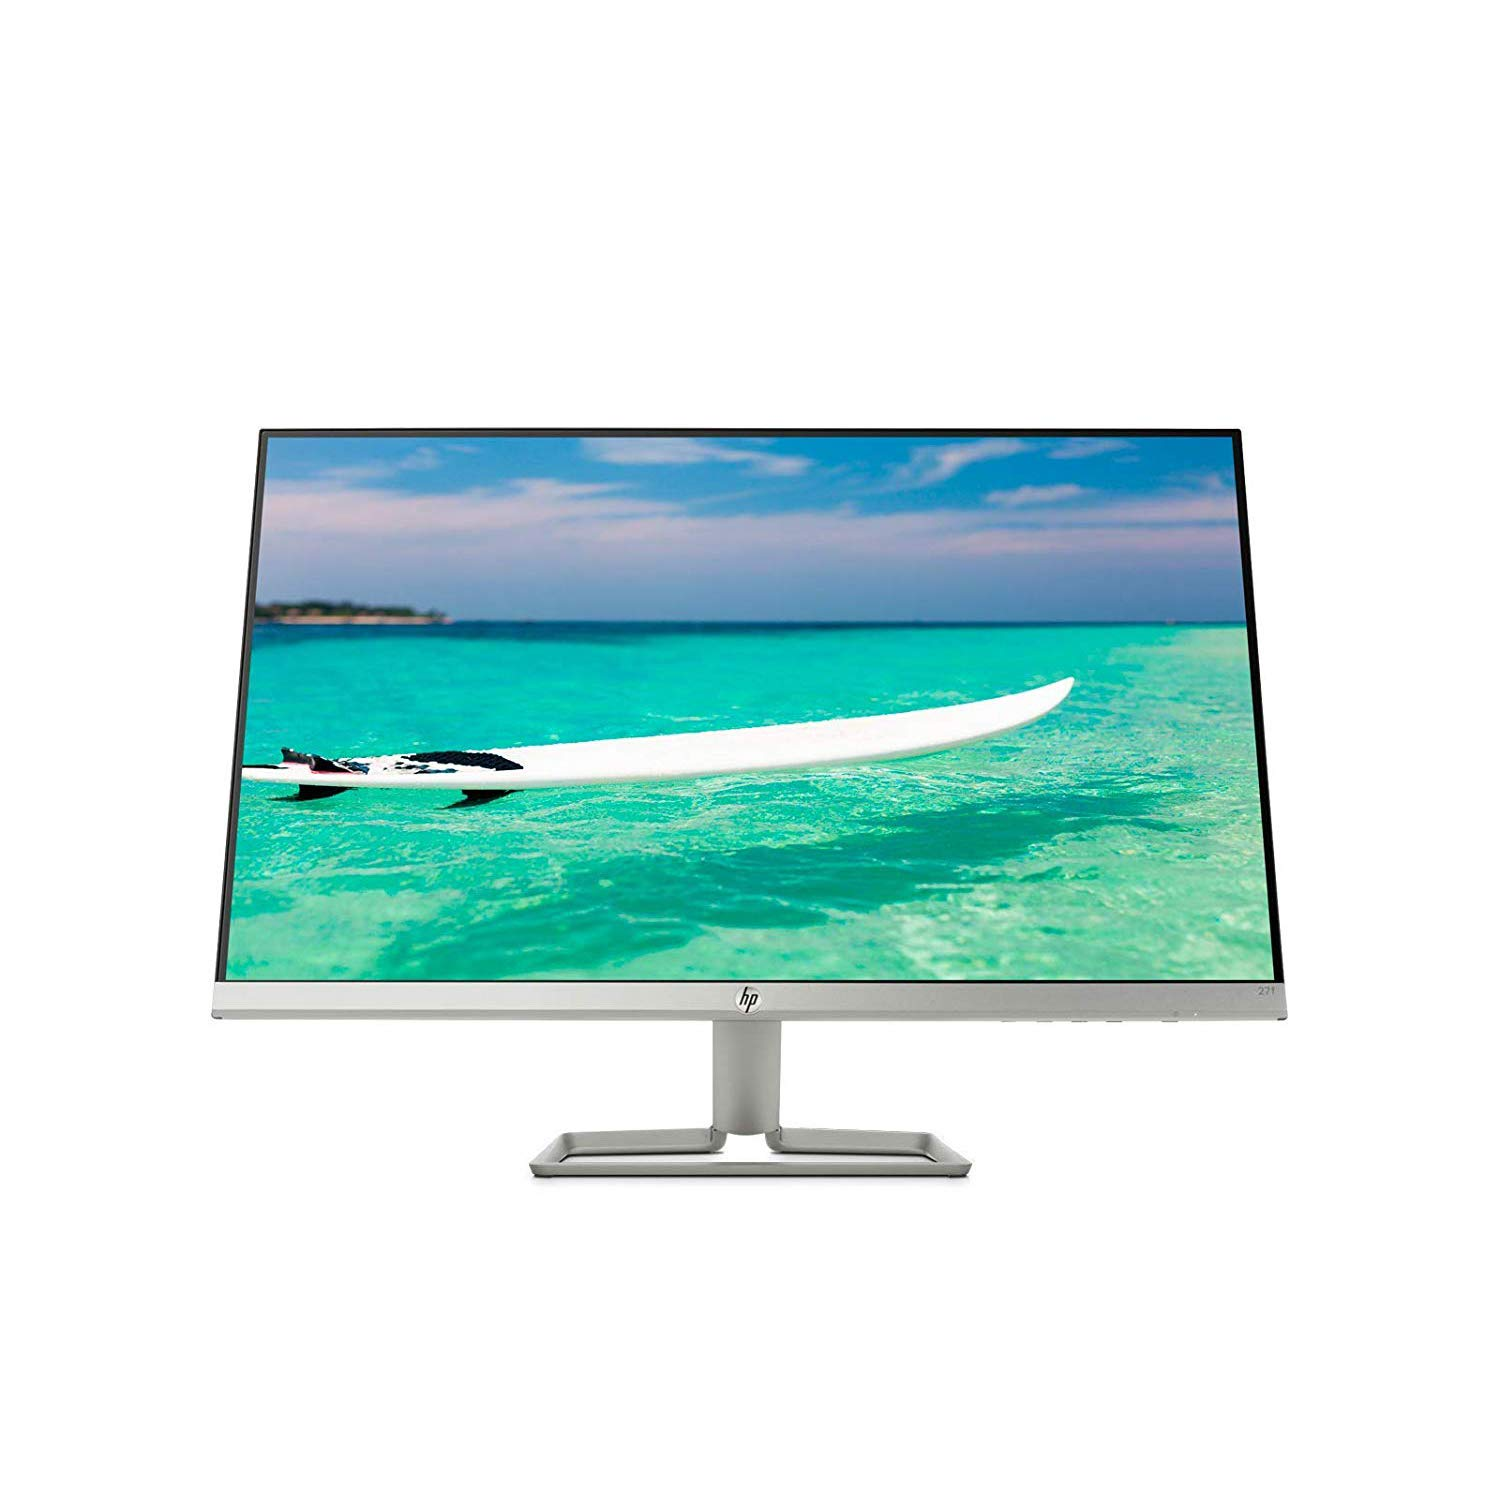 "2018 Flagship HP 27"" Full HD 1080P IPS Anti-Glare Business Professional Monitor - Frameless Edge-to-Edge Display, 16.7 Million Display Colors, 5ms Response Time 16:9 Aspect Ratio 250 cd/m2 Brightness"